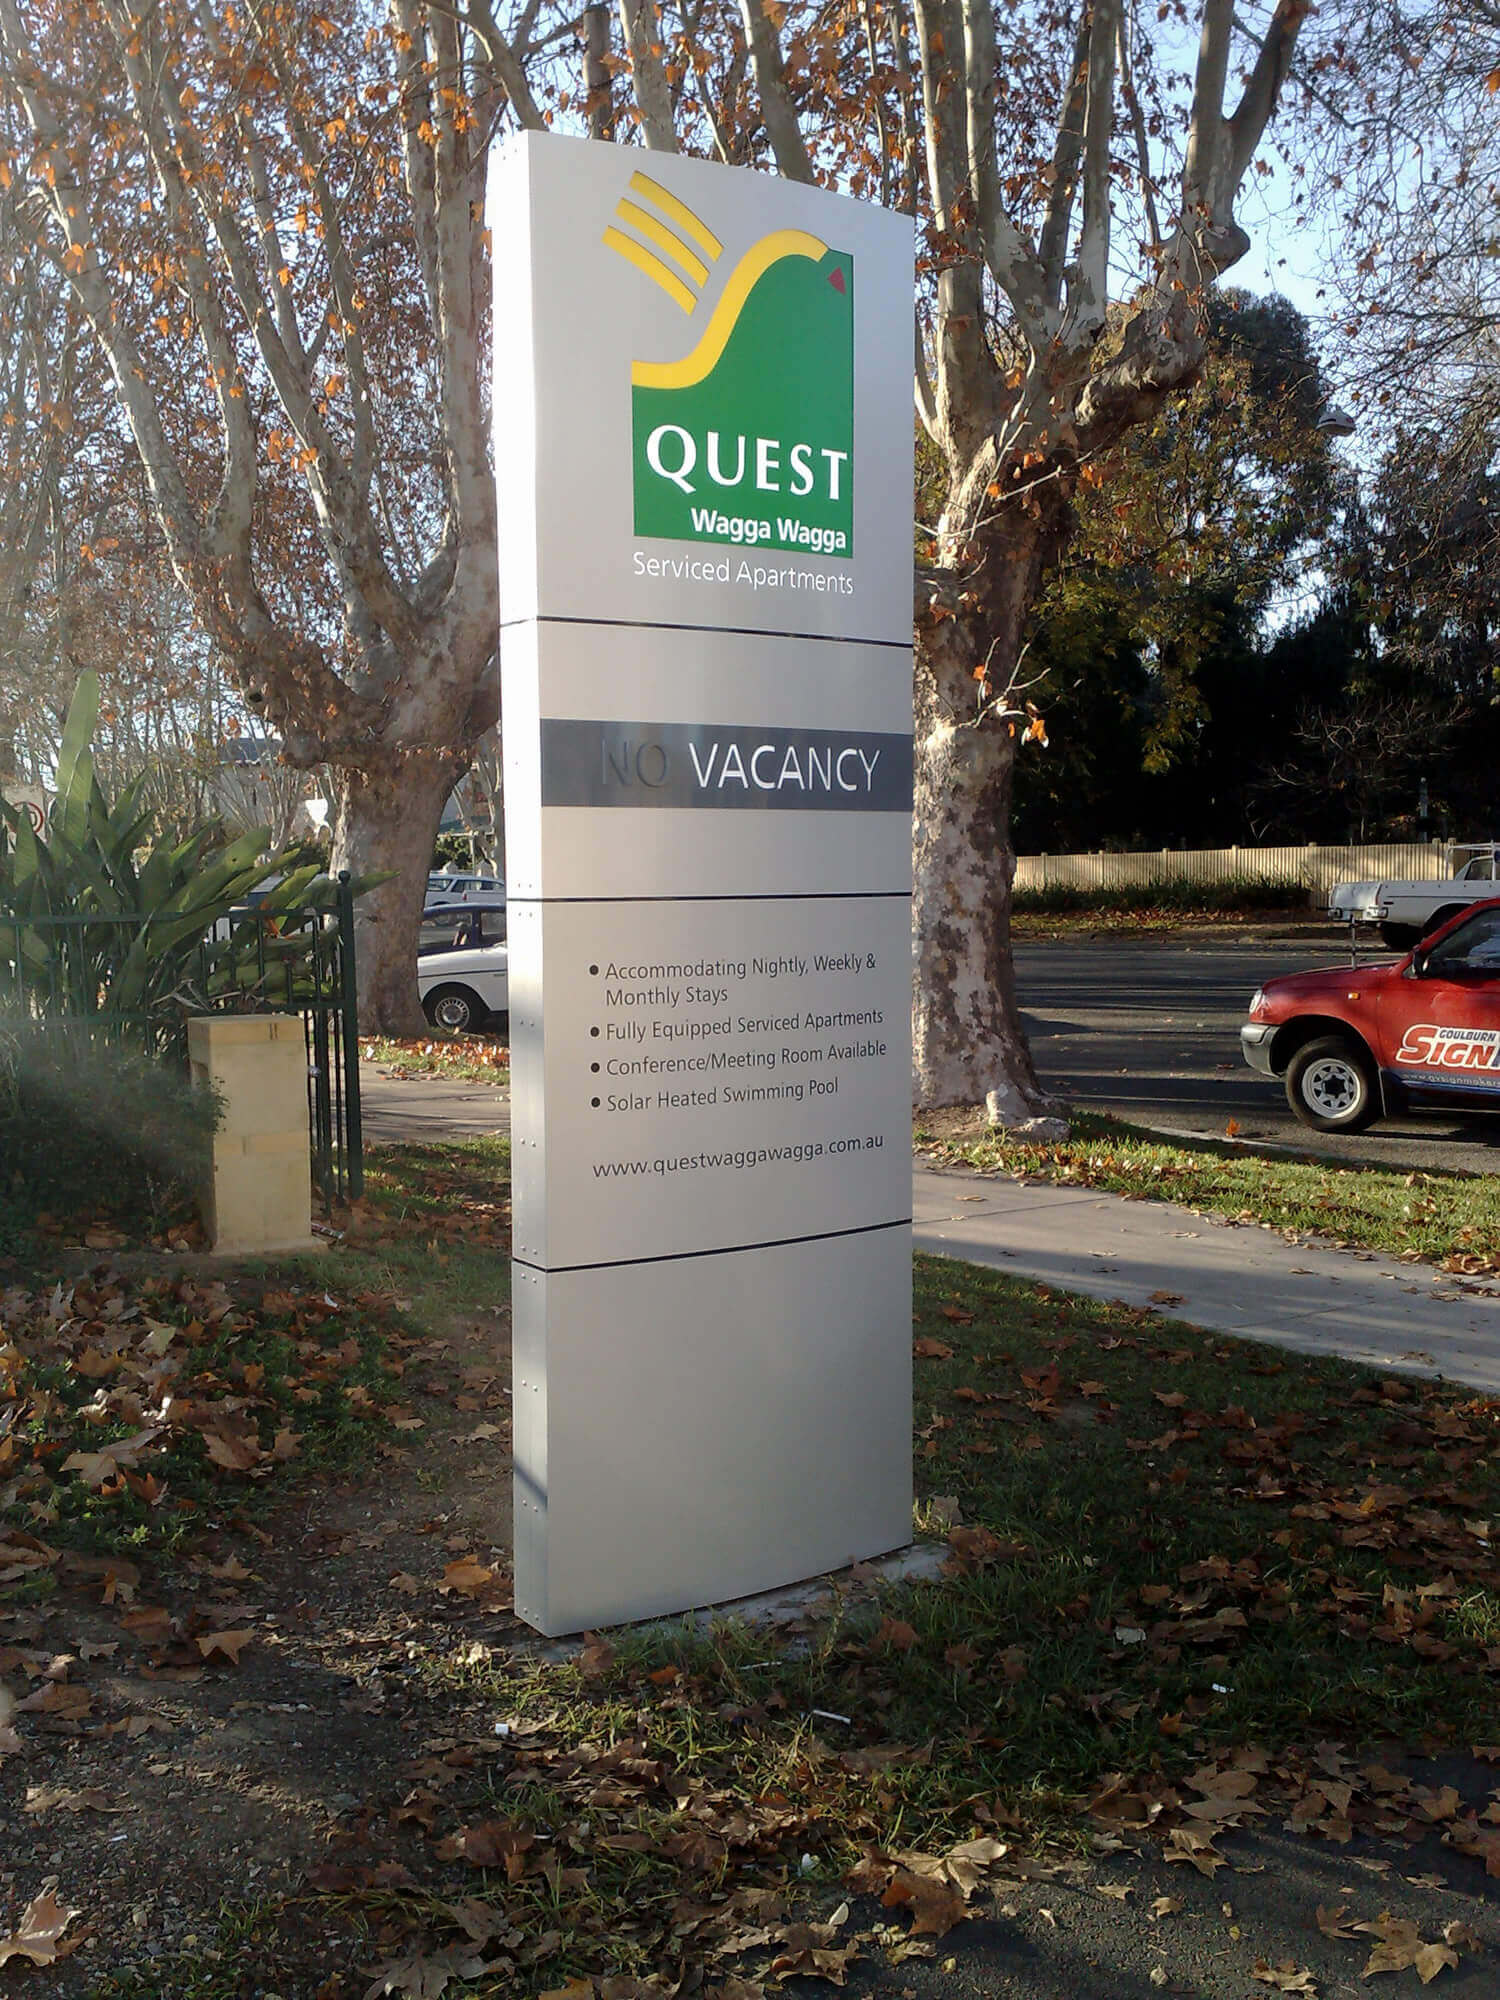 Quest Wagga